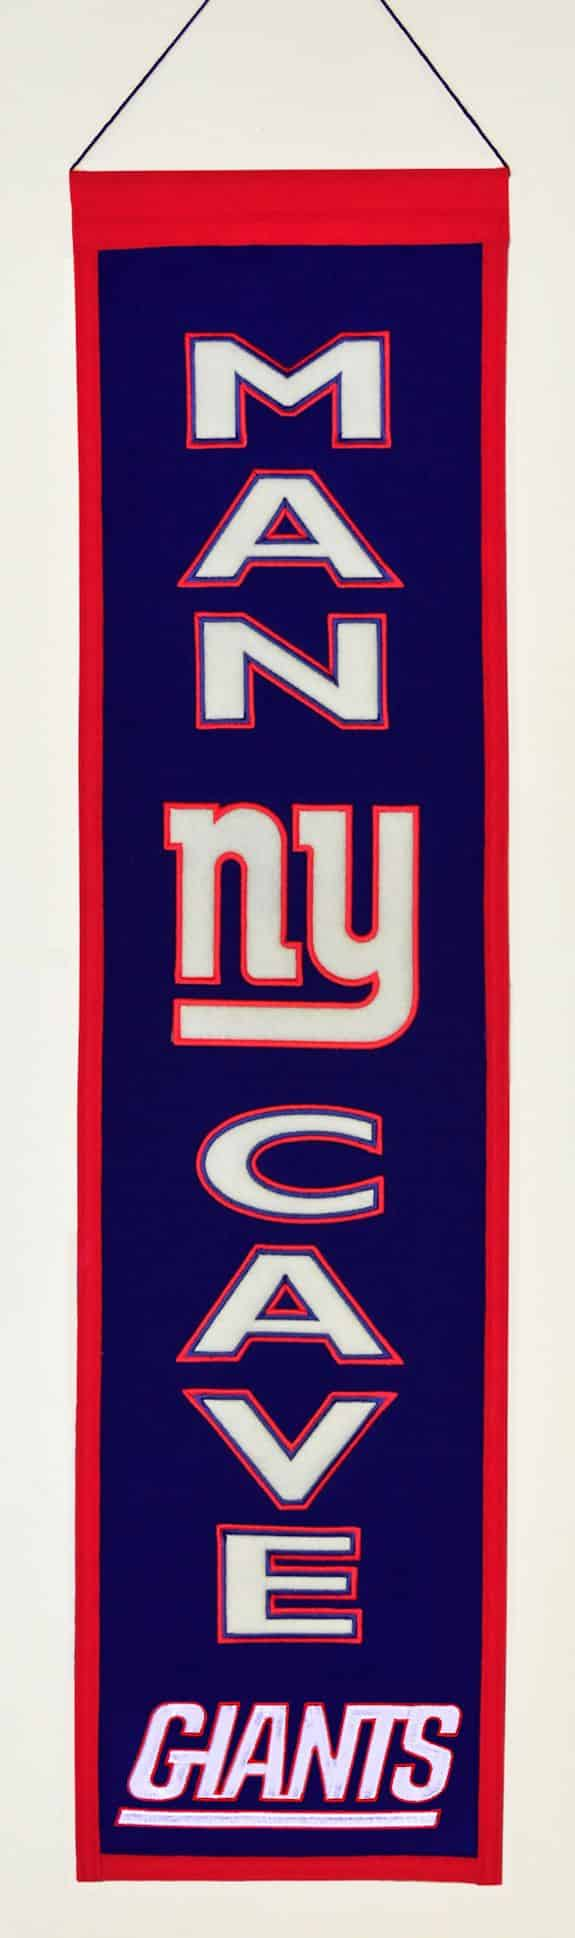 Ny Giants Man Cave Ideas : New york giants wool man cave banner detroit game gear